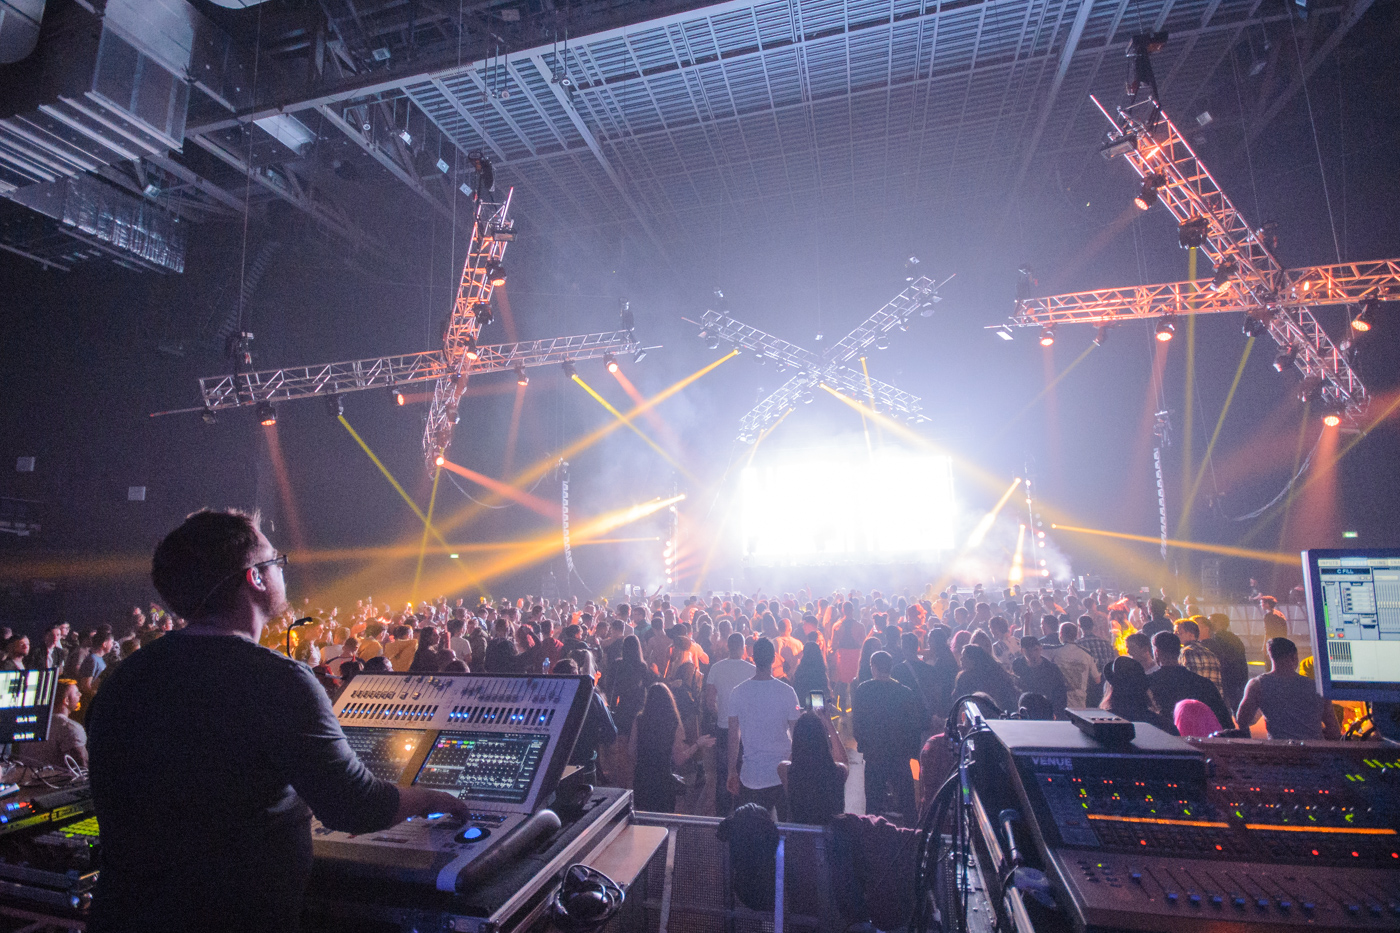 winterparty-at-3arena-dublin-30-10-2016-by-sean-smyth-11-of-53